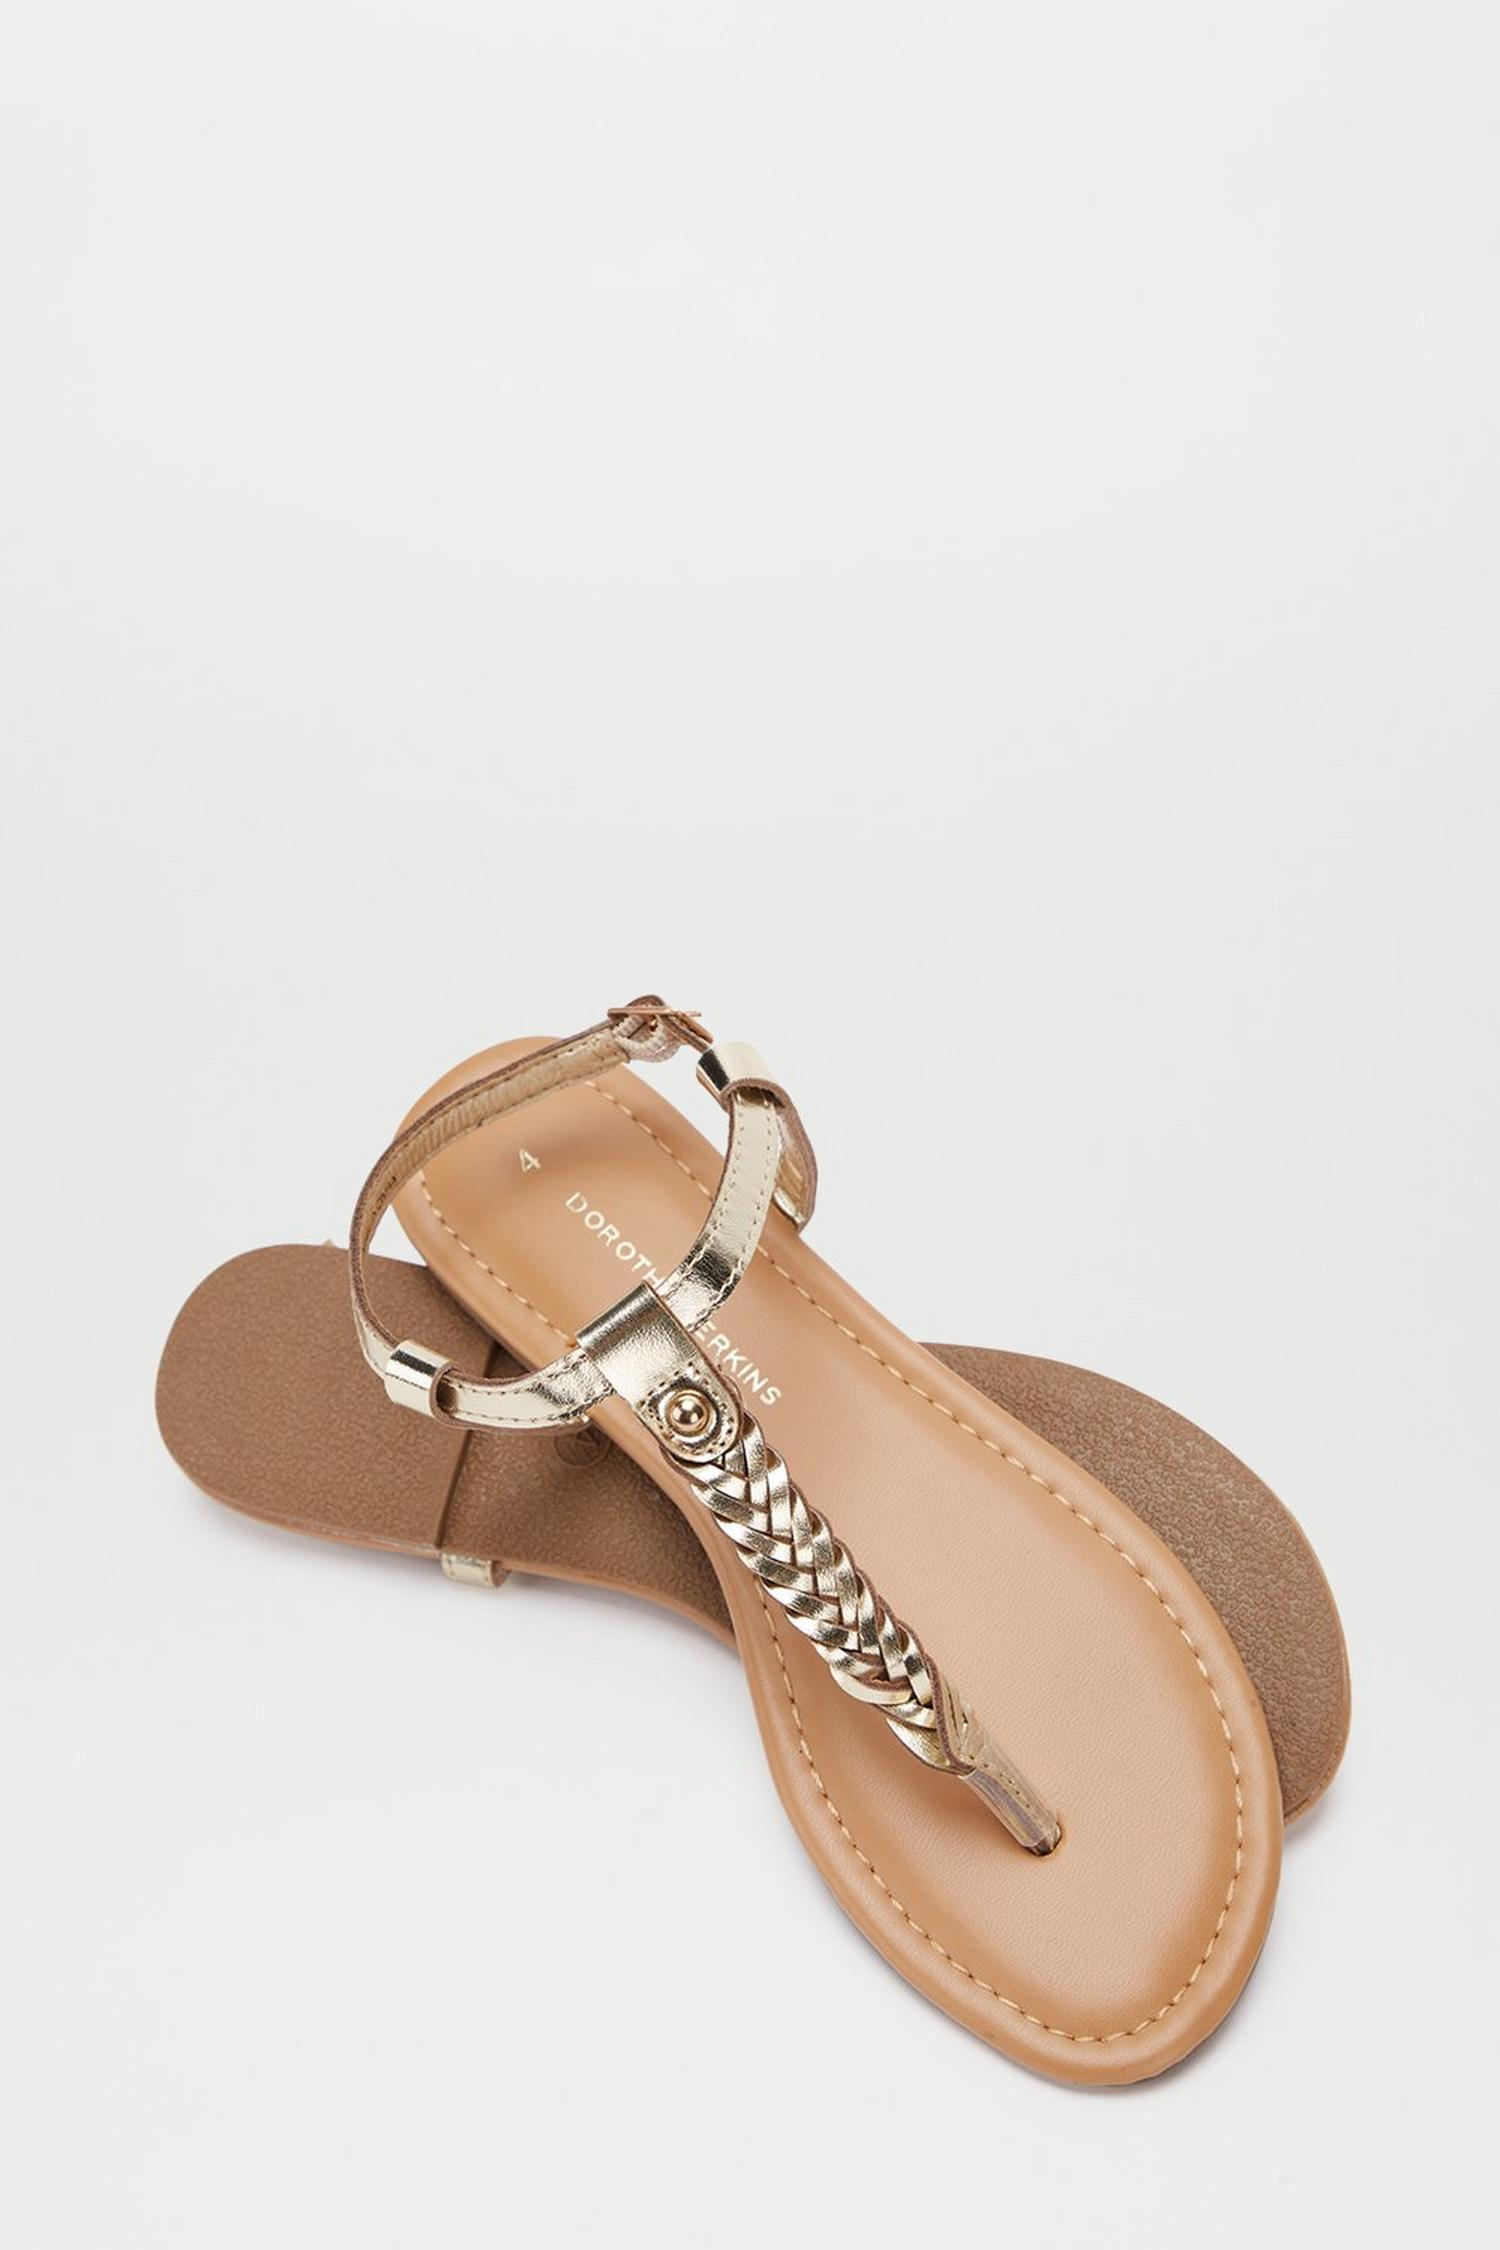 579 Gold Free Sandals image number 3